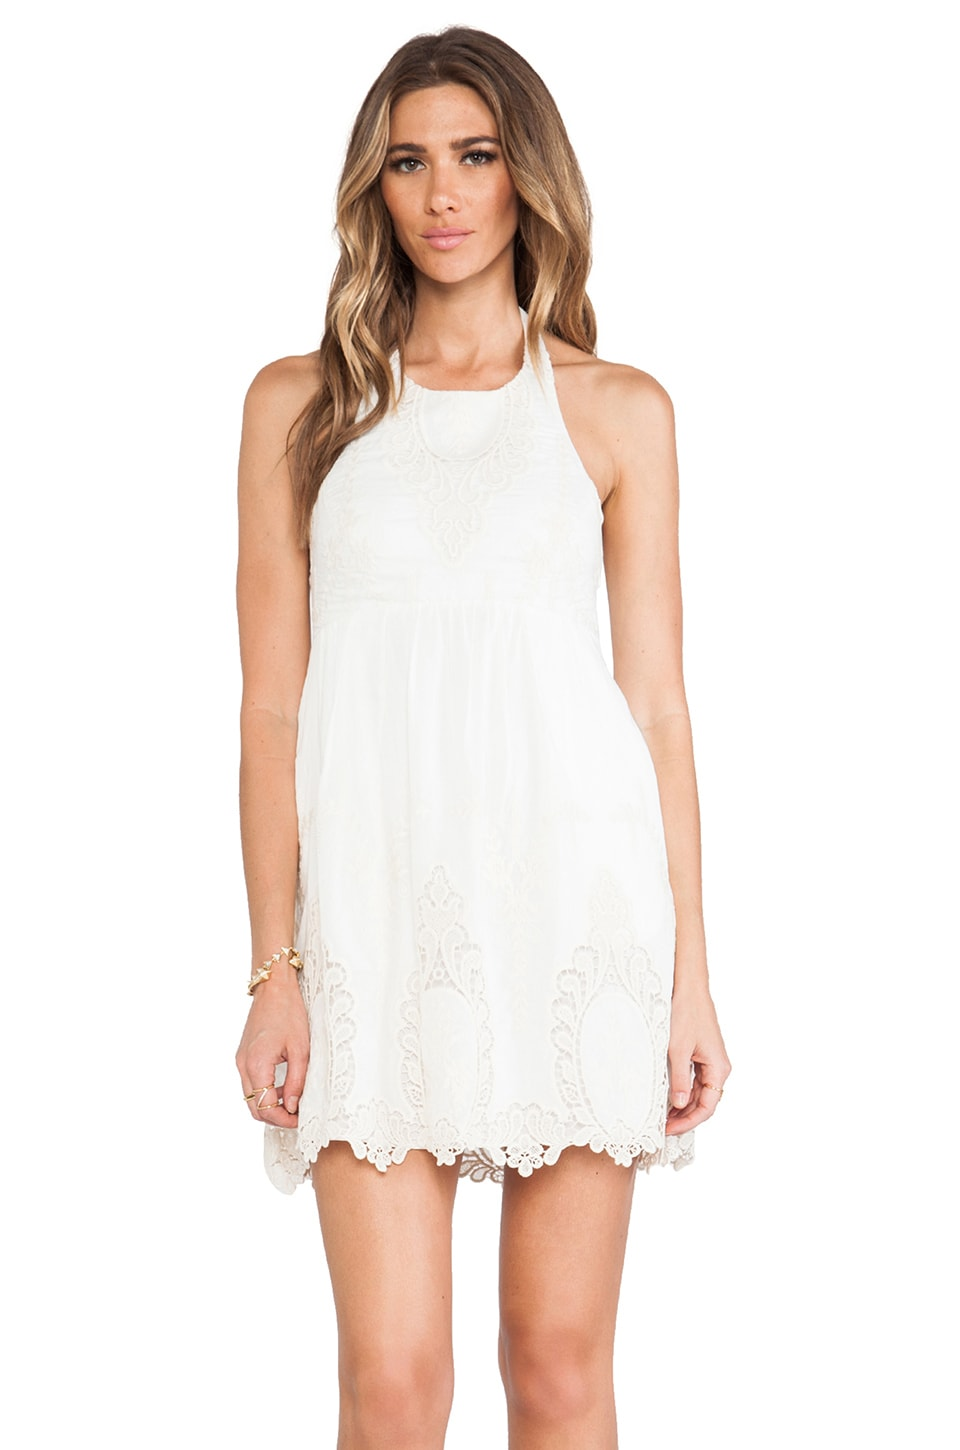 Dolce Vita Adelina Dress in White & Natural